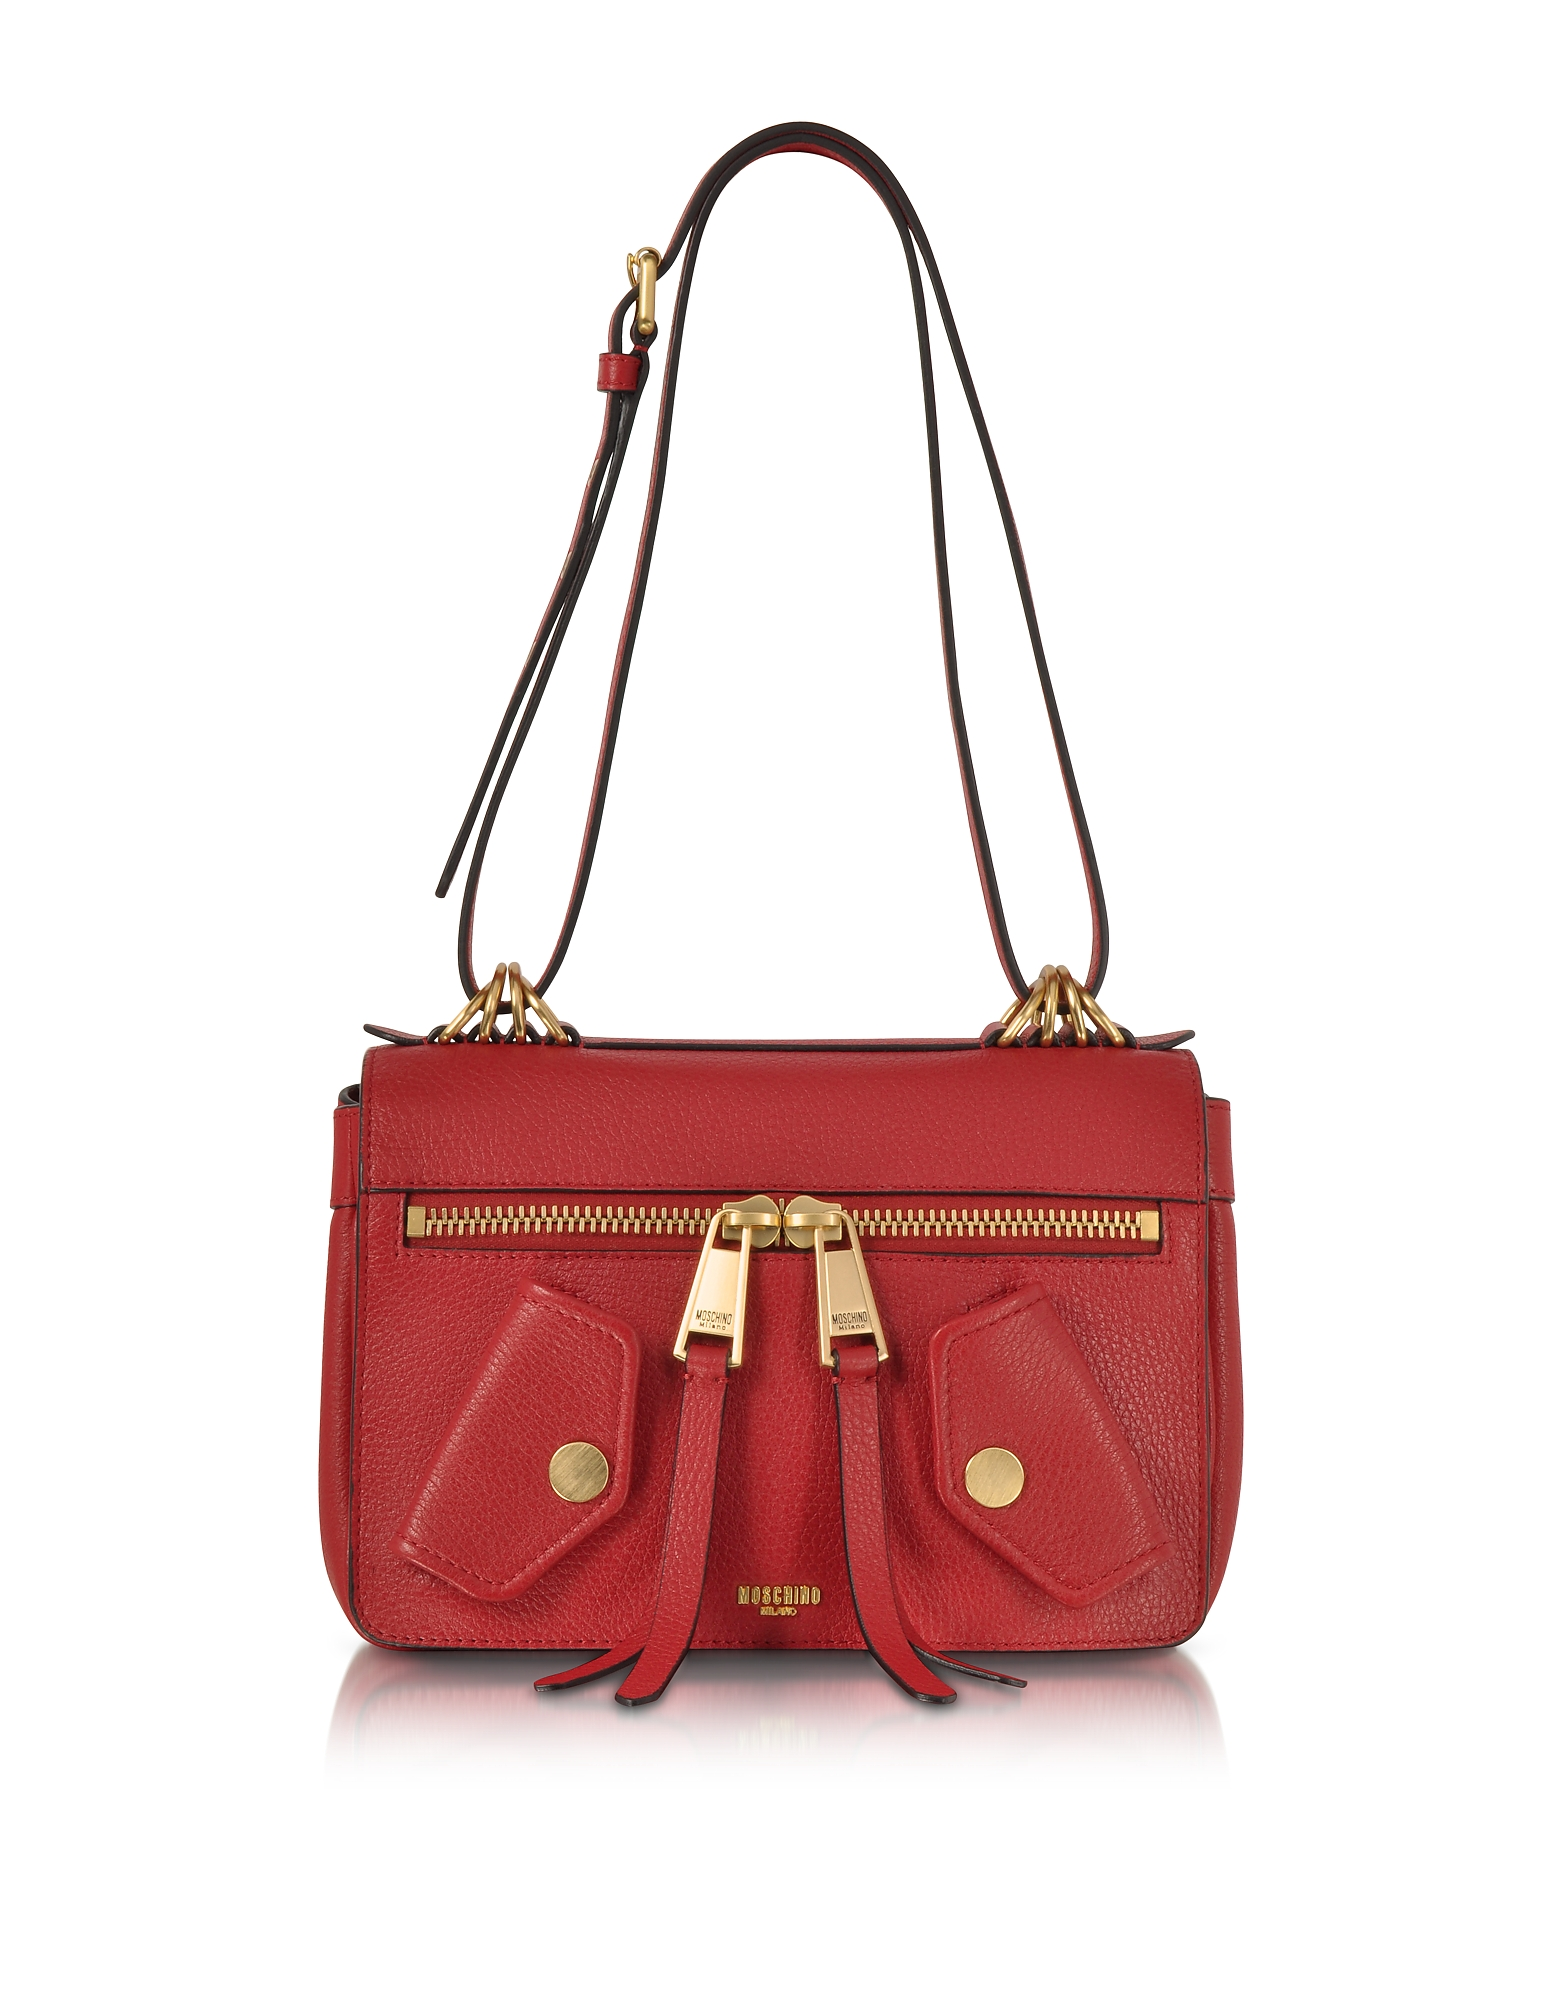 Moschino Red Leather Shoulder Bag